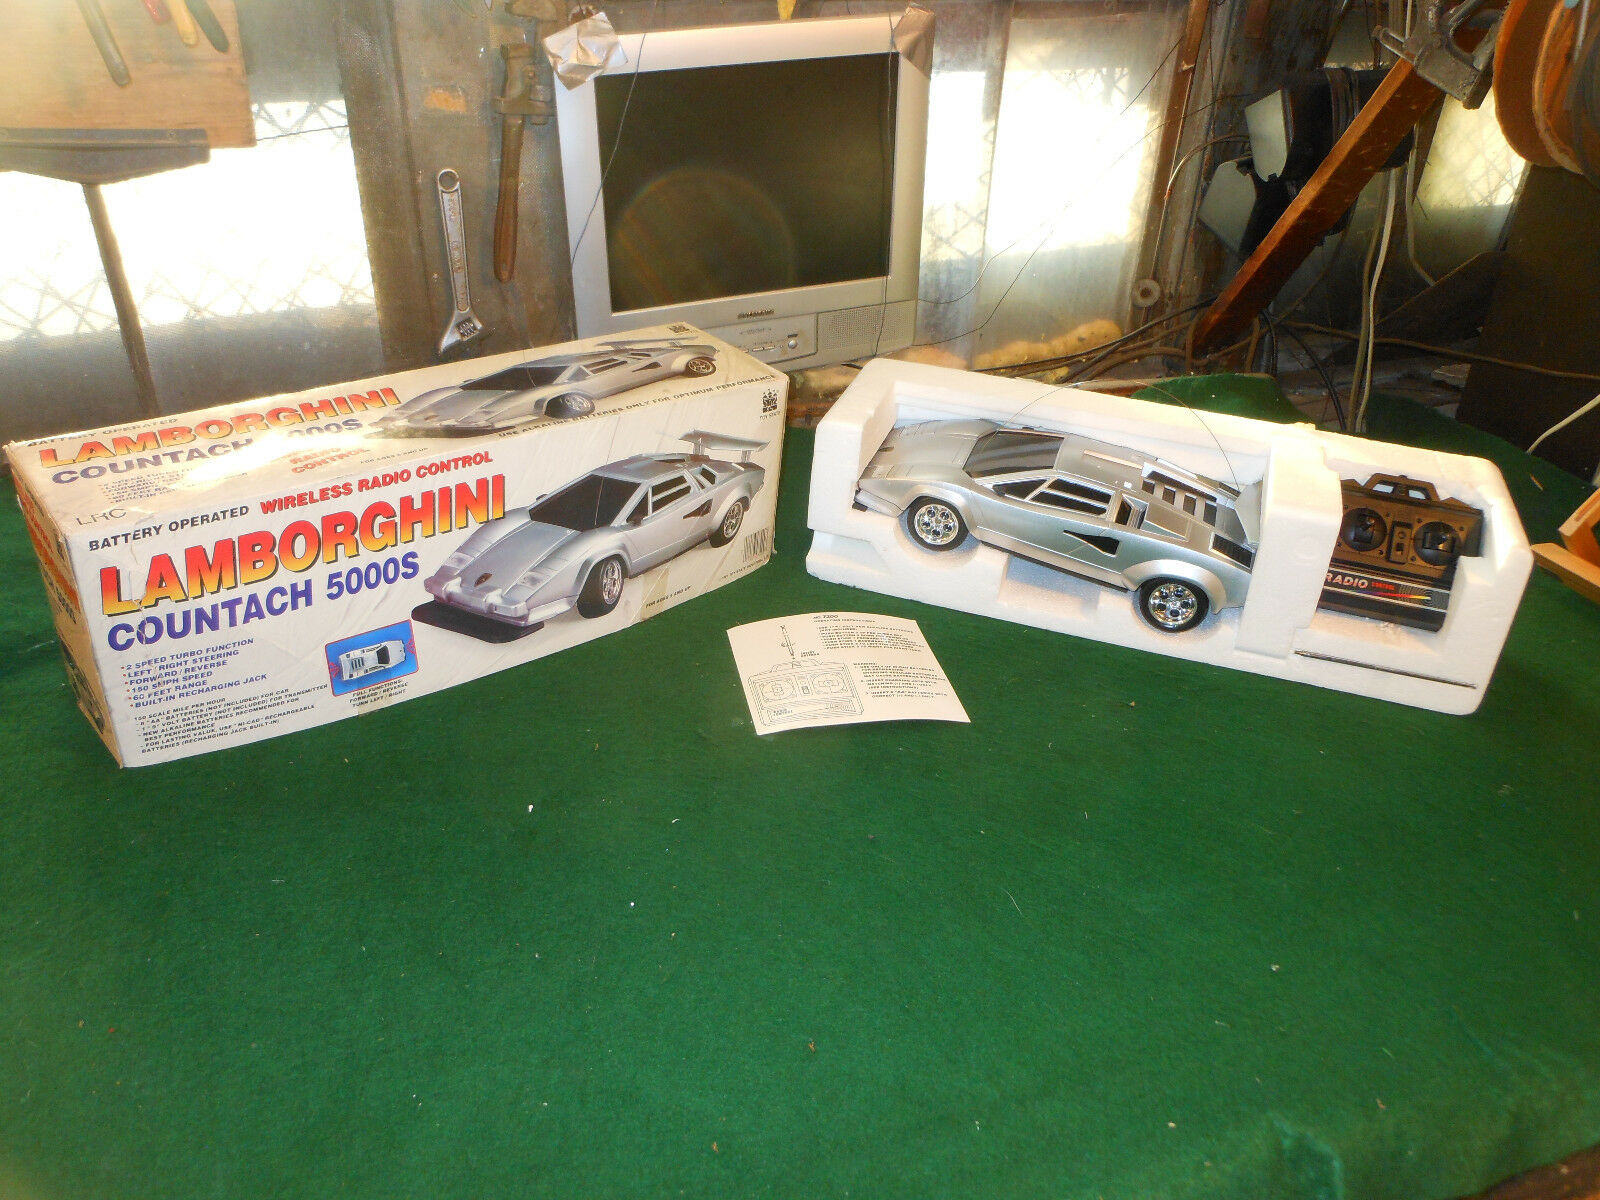 Vintage Toy State Industrial Vintage Lamborghini RC Remote Control Mint in Box